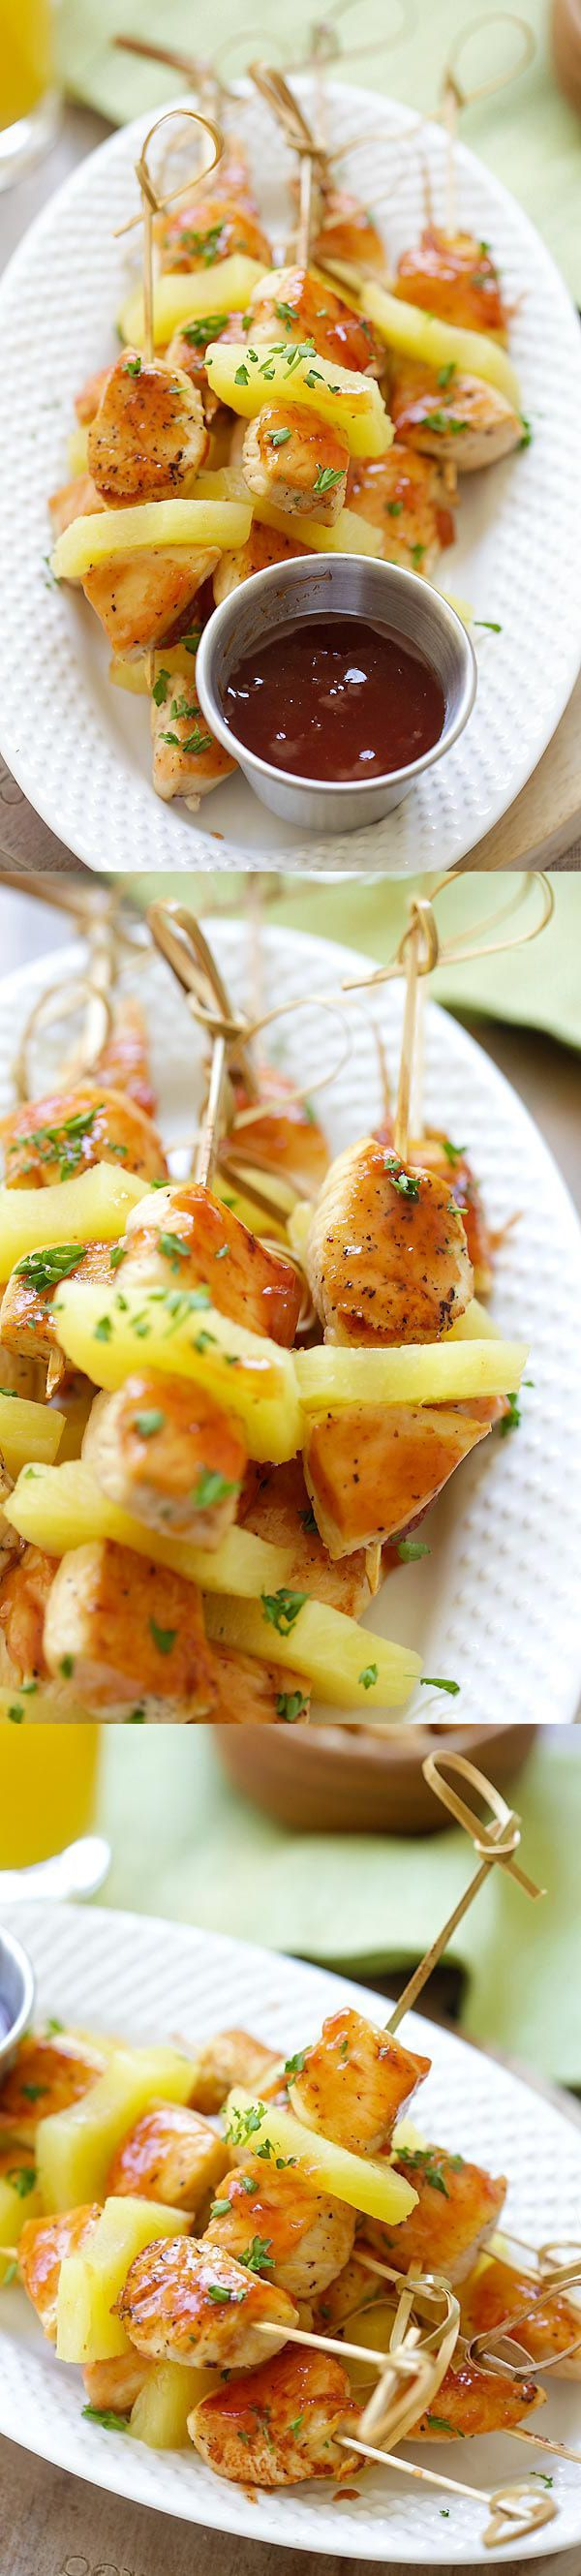 How To Make Hawaiian Chicken Bites | Food Recipes | To celebrate the Aloha spirit, I am sharing with you this amazing Hawaiian chicken bites recipe that is easy, delicious, and perfect for the summer. Entertaining the Hawaiian-style has never been so easy with all the amazing brands and food products from Hawaii: King's Hawaiian, Dole, SPAM®, Ma... #Chicken, #Healthy, #Pepper, #Pineapples, #Recipes #hawaiianfoodrecipes